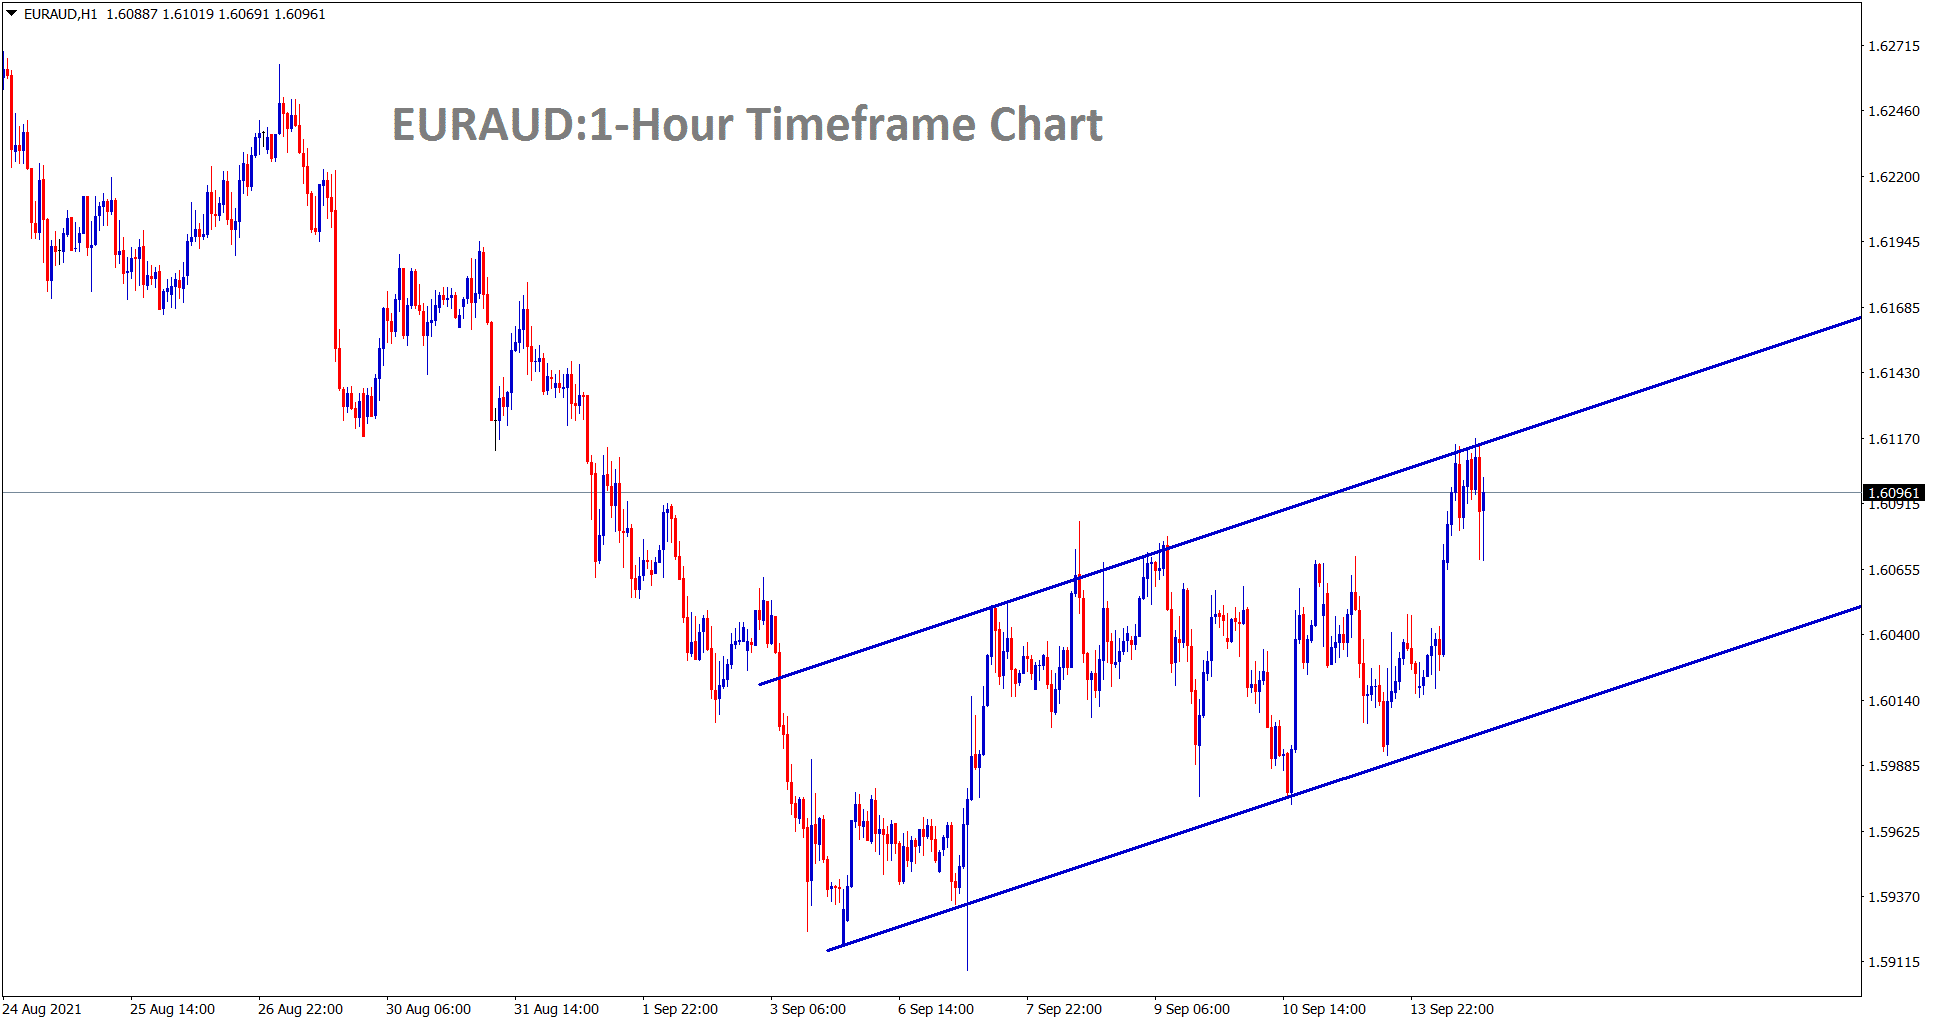 EURAUD is moving in an Ascending channel range